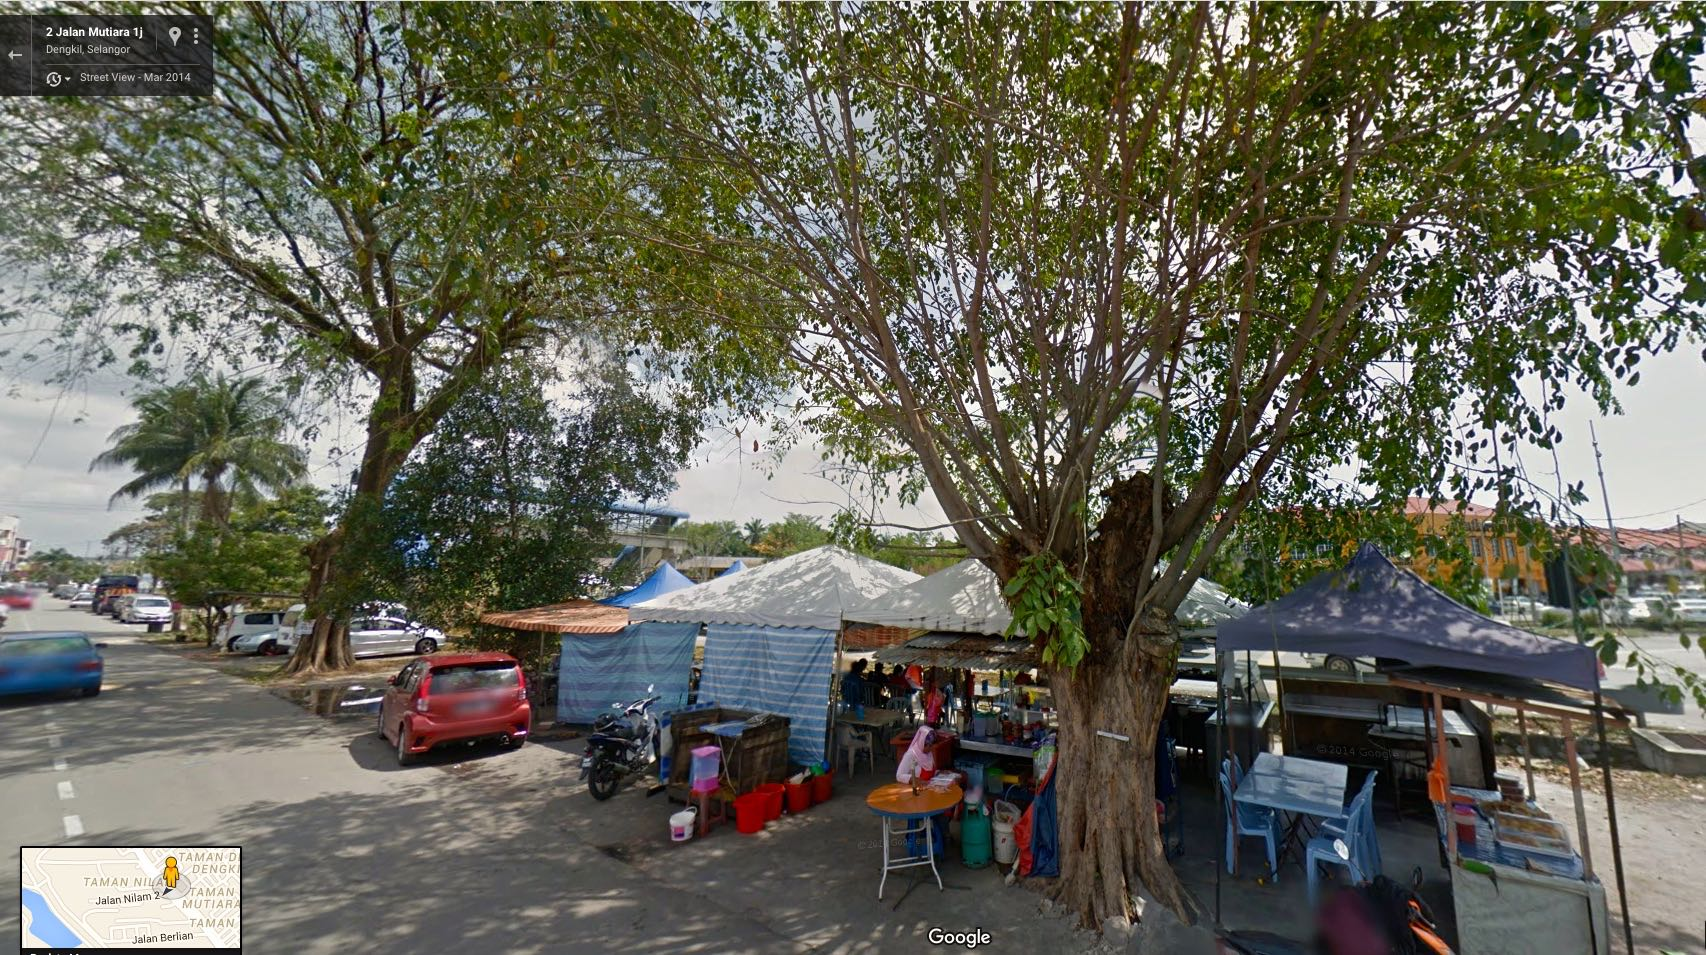 Photograph courtesy of Google Maps